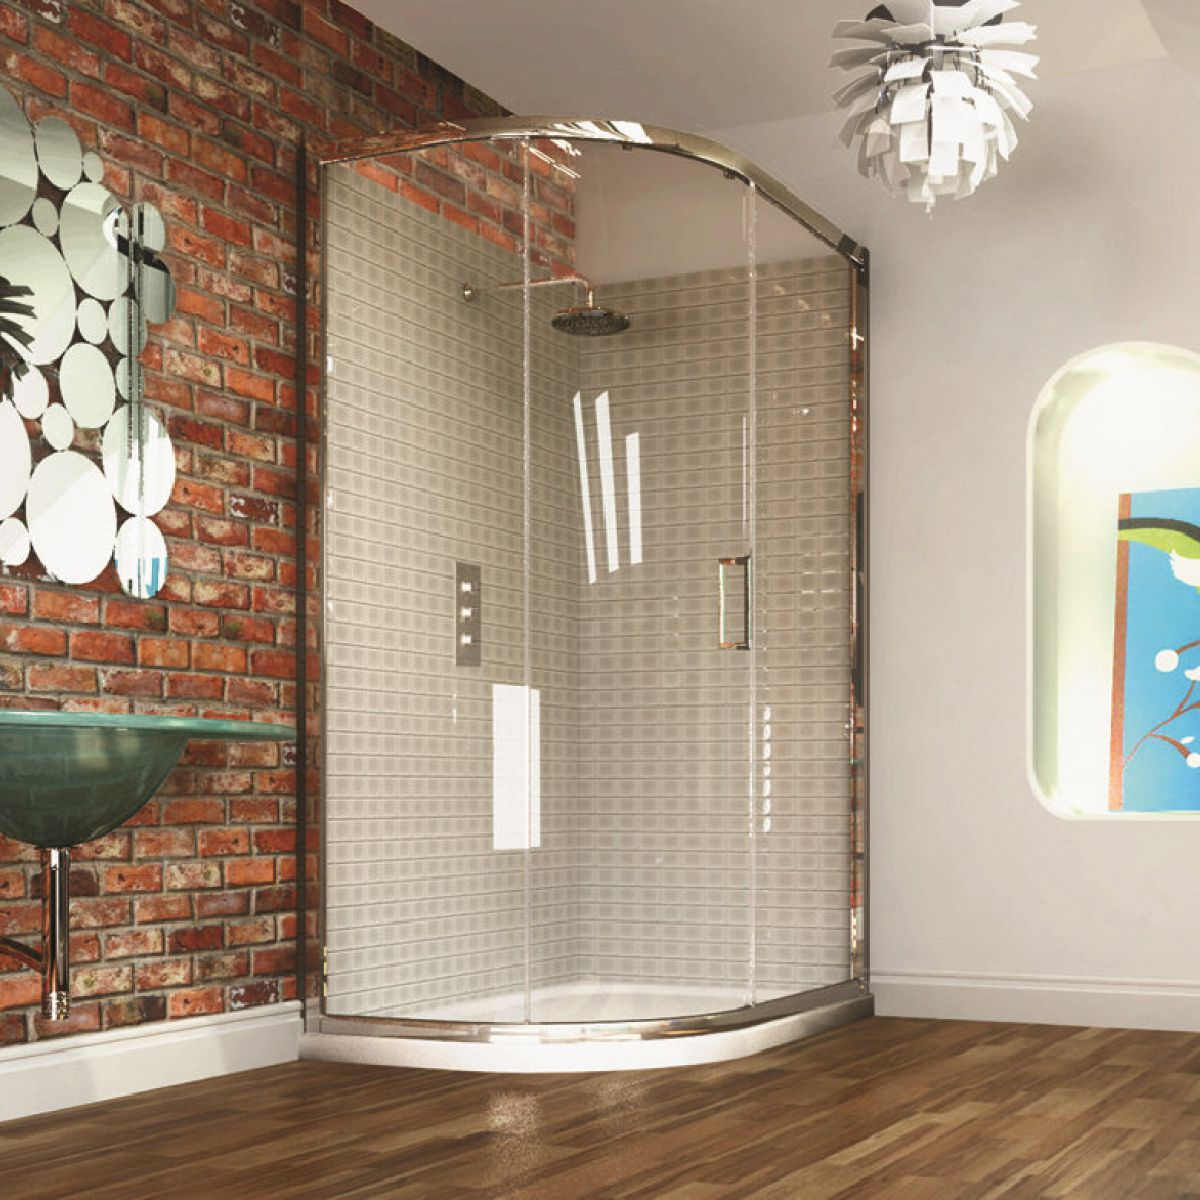 Bath With Shower Cubicle.Jupiter Hydro Shower Cabin Cubicle 900mm X ...